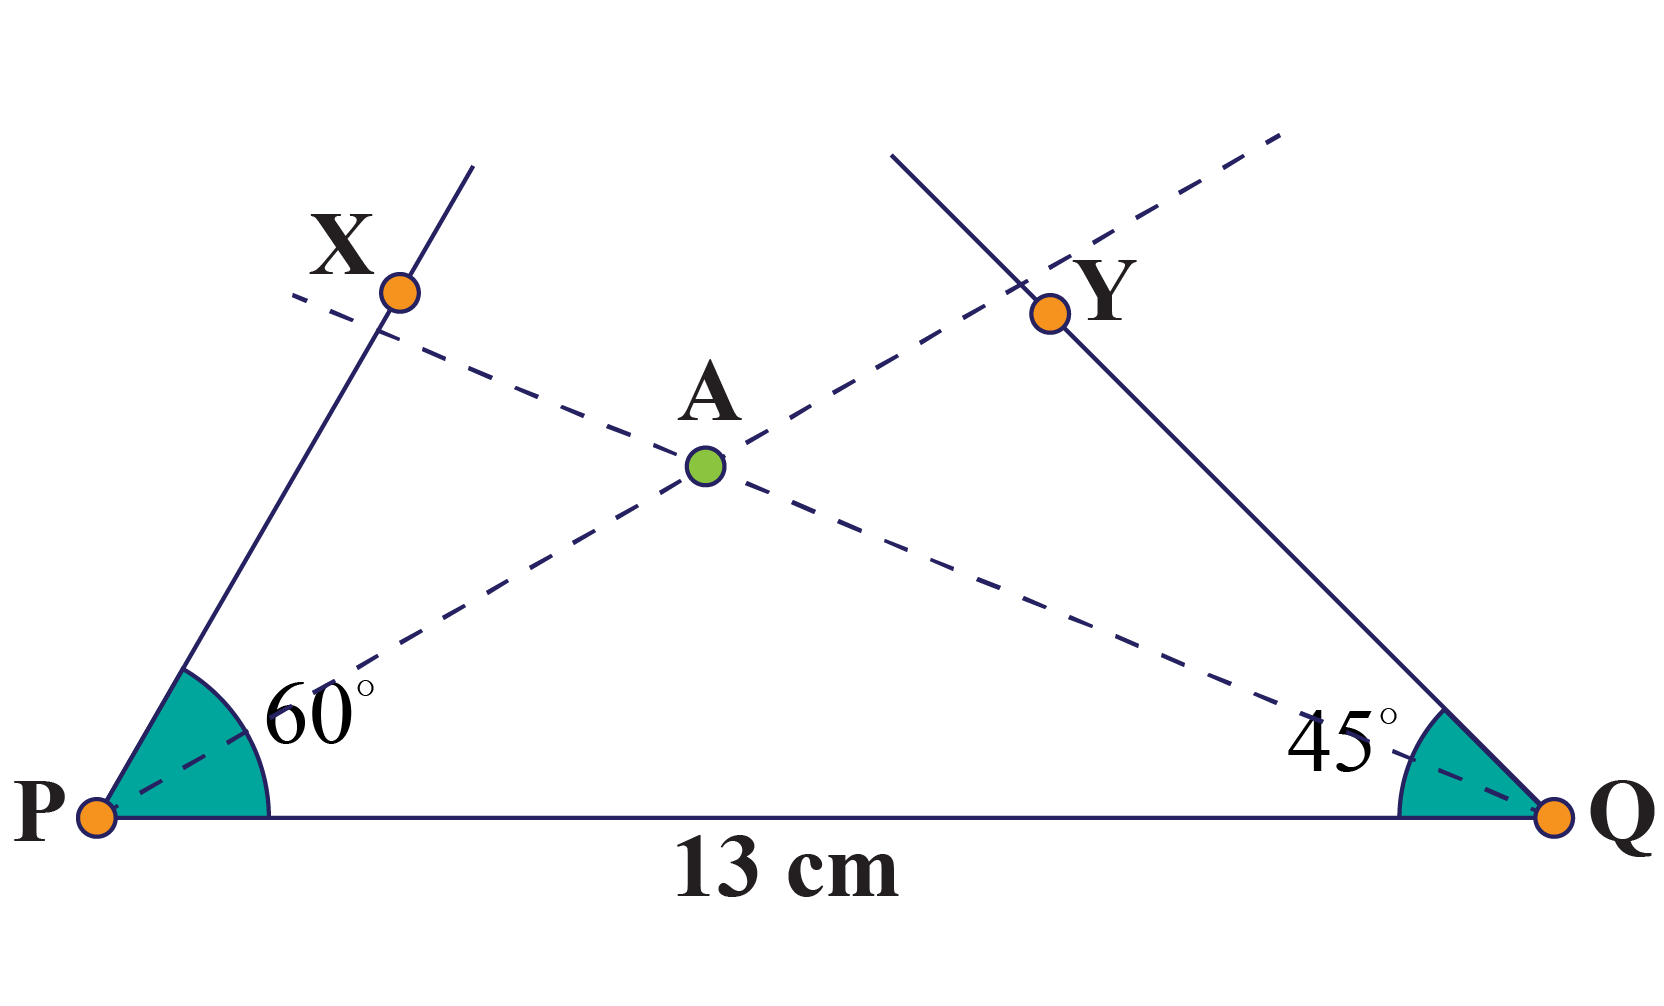 Angle bisectors and point of intersection